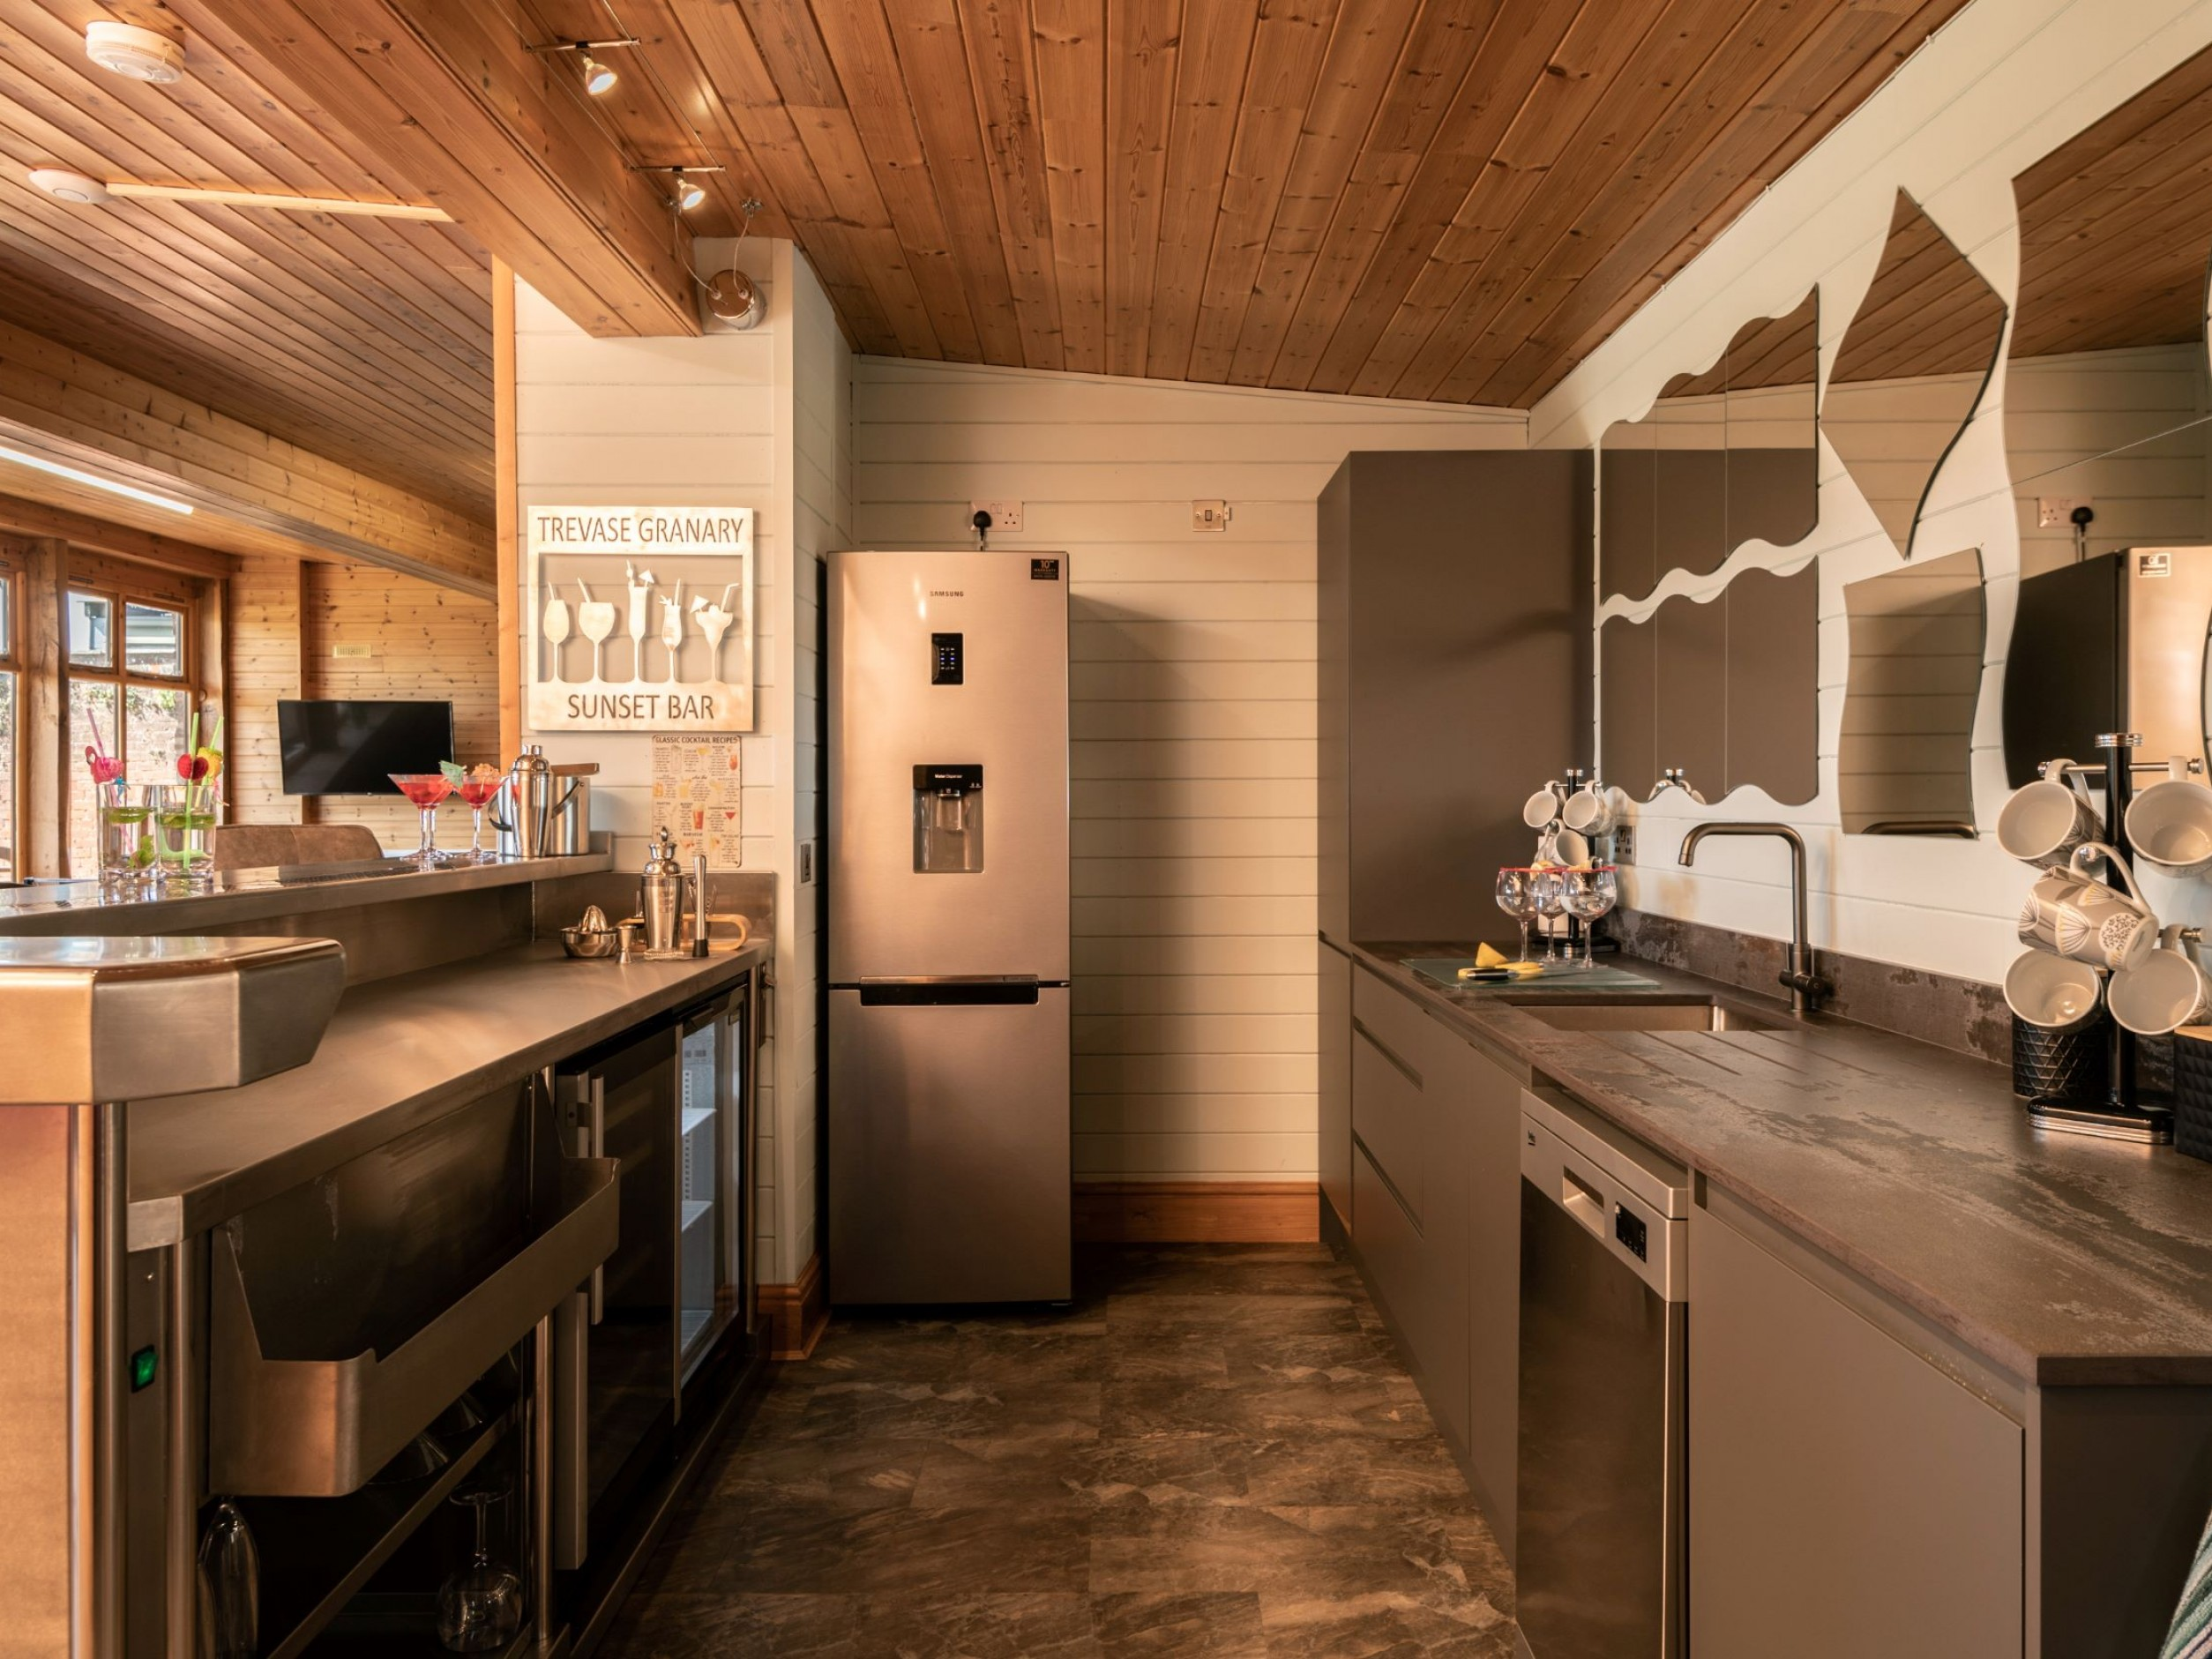 Kitchenette in Games Room